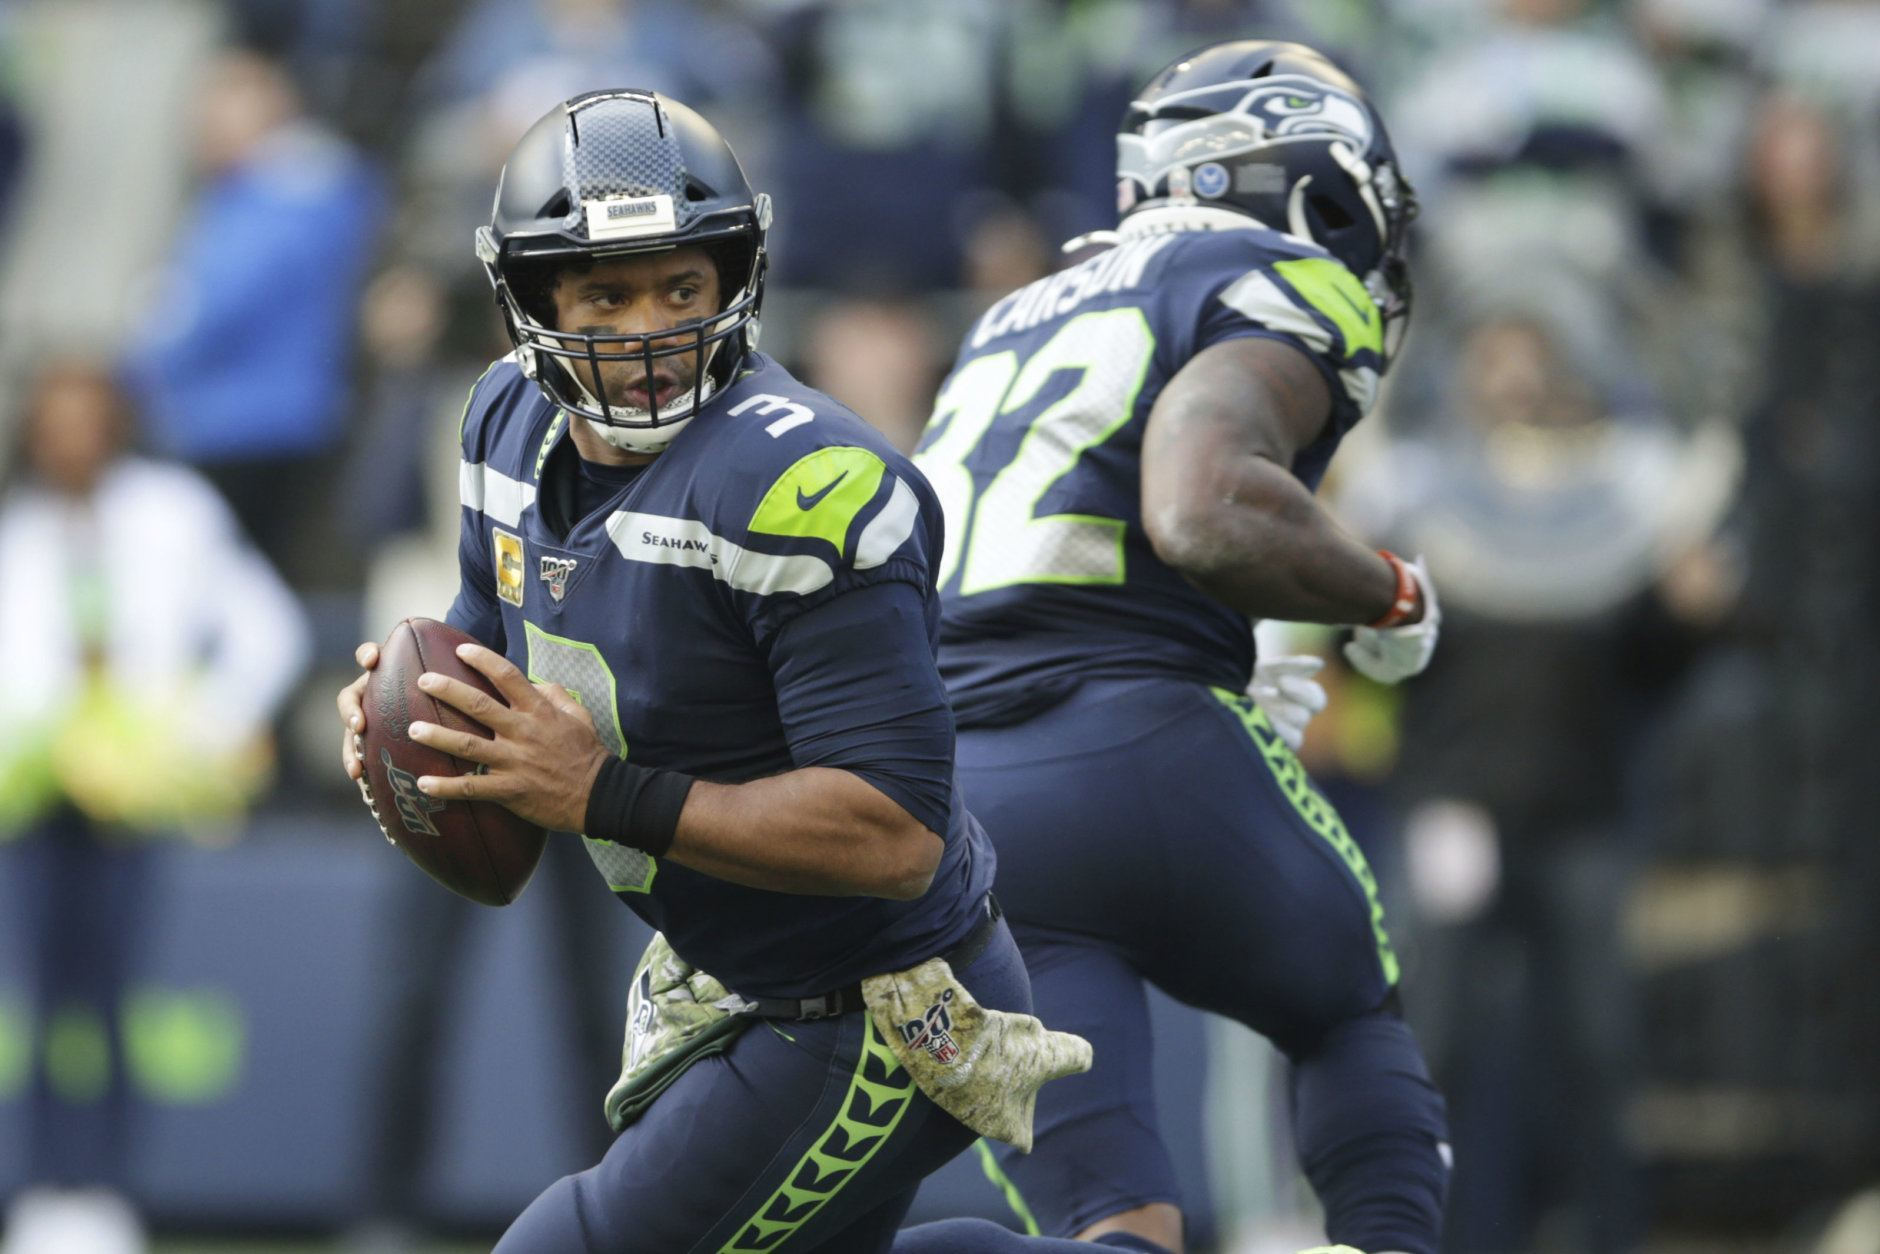 <div><b>MVP: Russell Wilson</b></div> <div></div> <div>In one of the most tightly contested MVP races in recent memory, Wilson edges out Lamar Jackson and finally gets his due for carrying Seattle to the playoffs without top-tier passing targets and a Seahawks defense currently ranked in the bottom third of the league in yardage and points allowed. Still, Wilson leads the NFL in passer rating (118.2) and passing touchdowns (22), while completing a career-high 68.3% of his passes for 2.505 passing yards (third-best in the league). Oh, did I mention he&#8217;s only been intercepted once? If he&#8217;s not the MVP, there&#8217;s no such thing as an MVP.</div> <div></div> <div><em>Honorable mention: Jackson, Christian McCaffrey, Deshaun Watson</em></div>